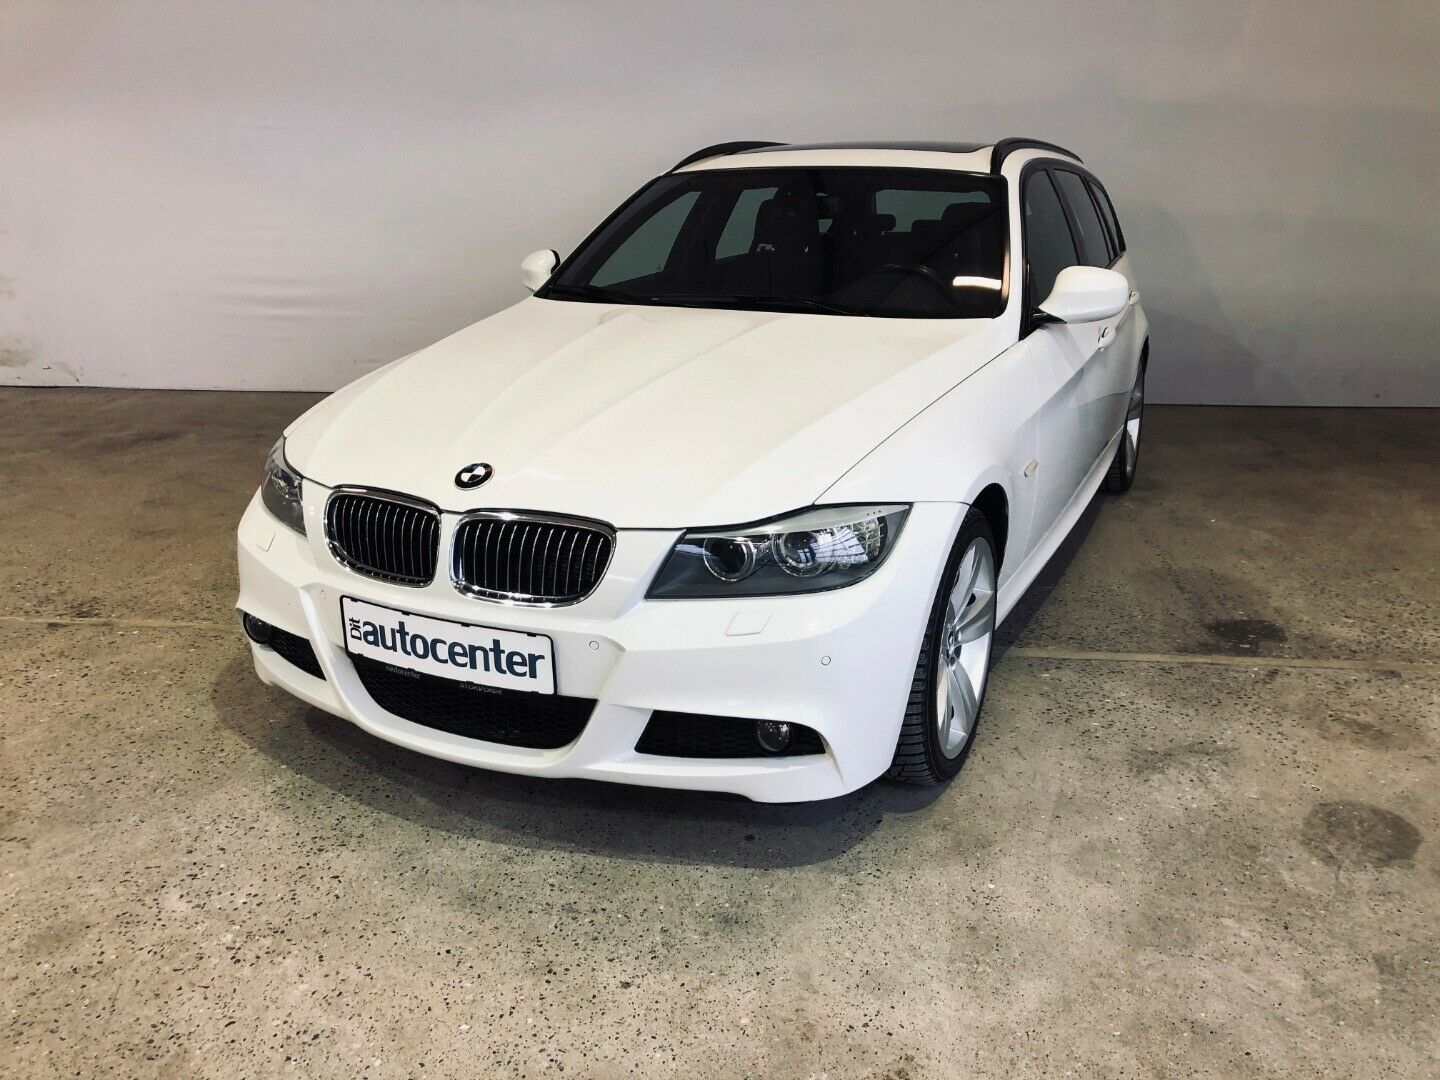 BMW 320d 2,0 Touring xDrive Steptr. 5d - 189.900 kr.